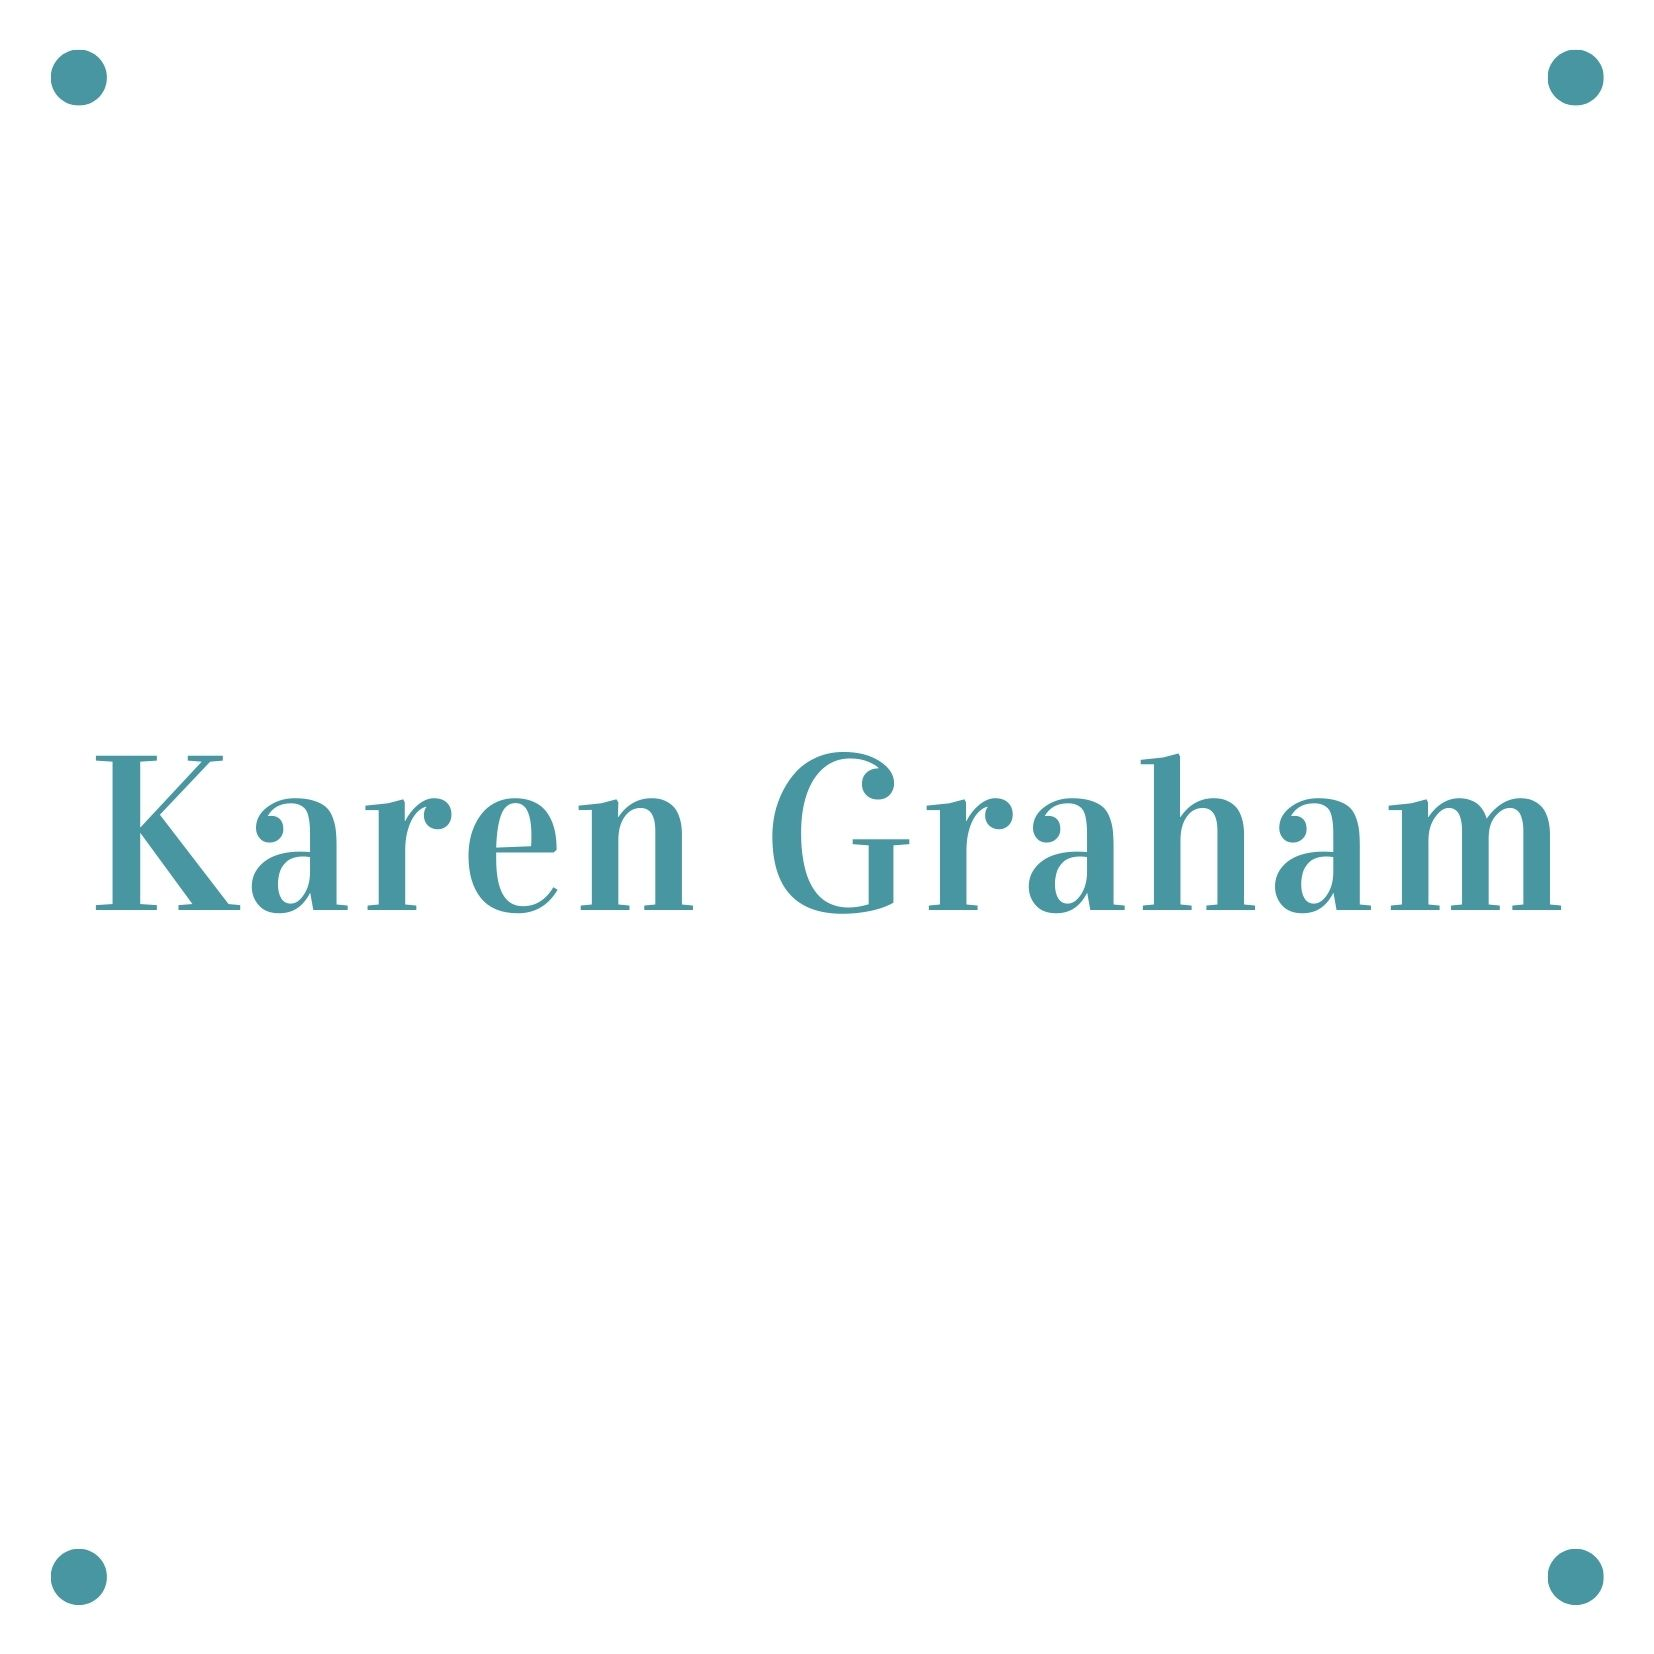 """Karen Graham <br><span style=""""color: #0aadeb;"""">Administration Manager</span>"""